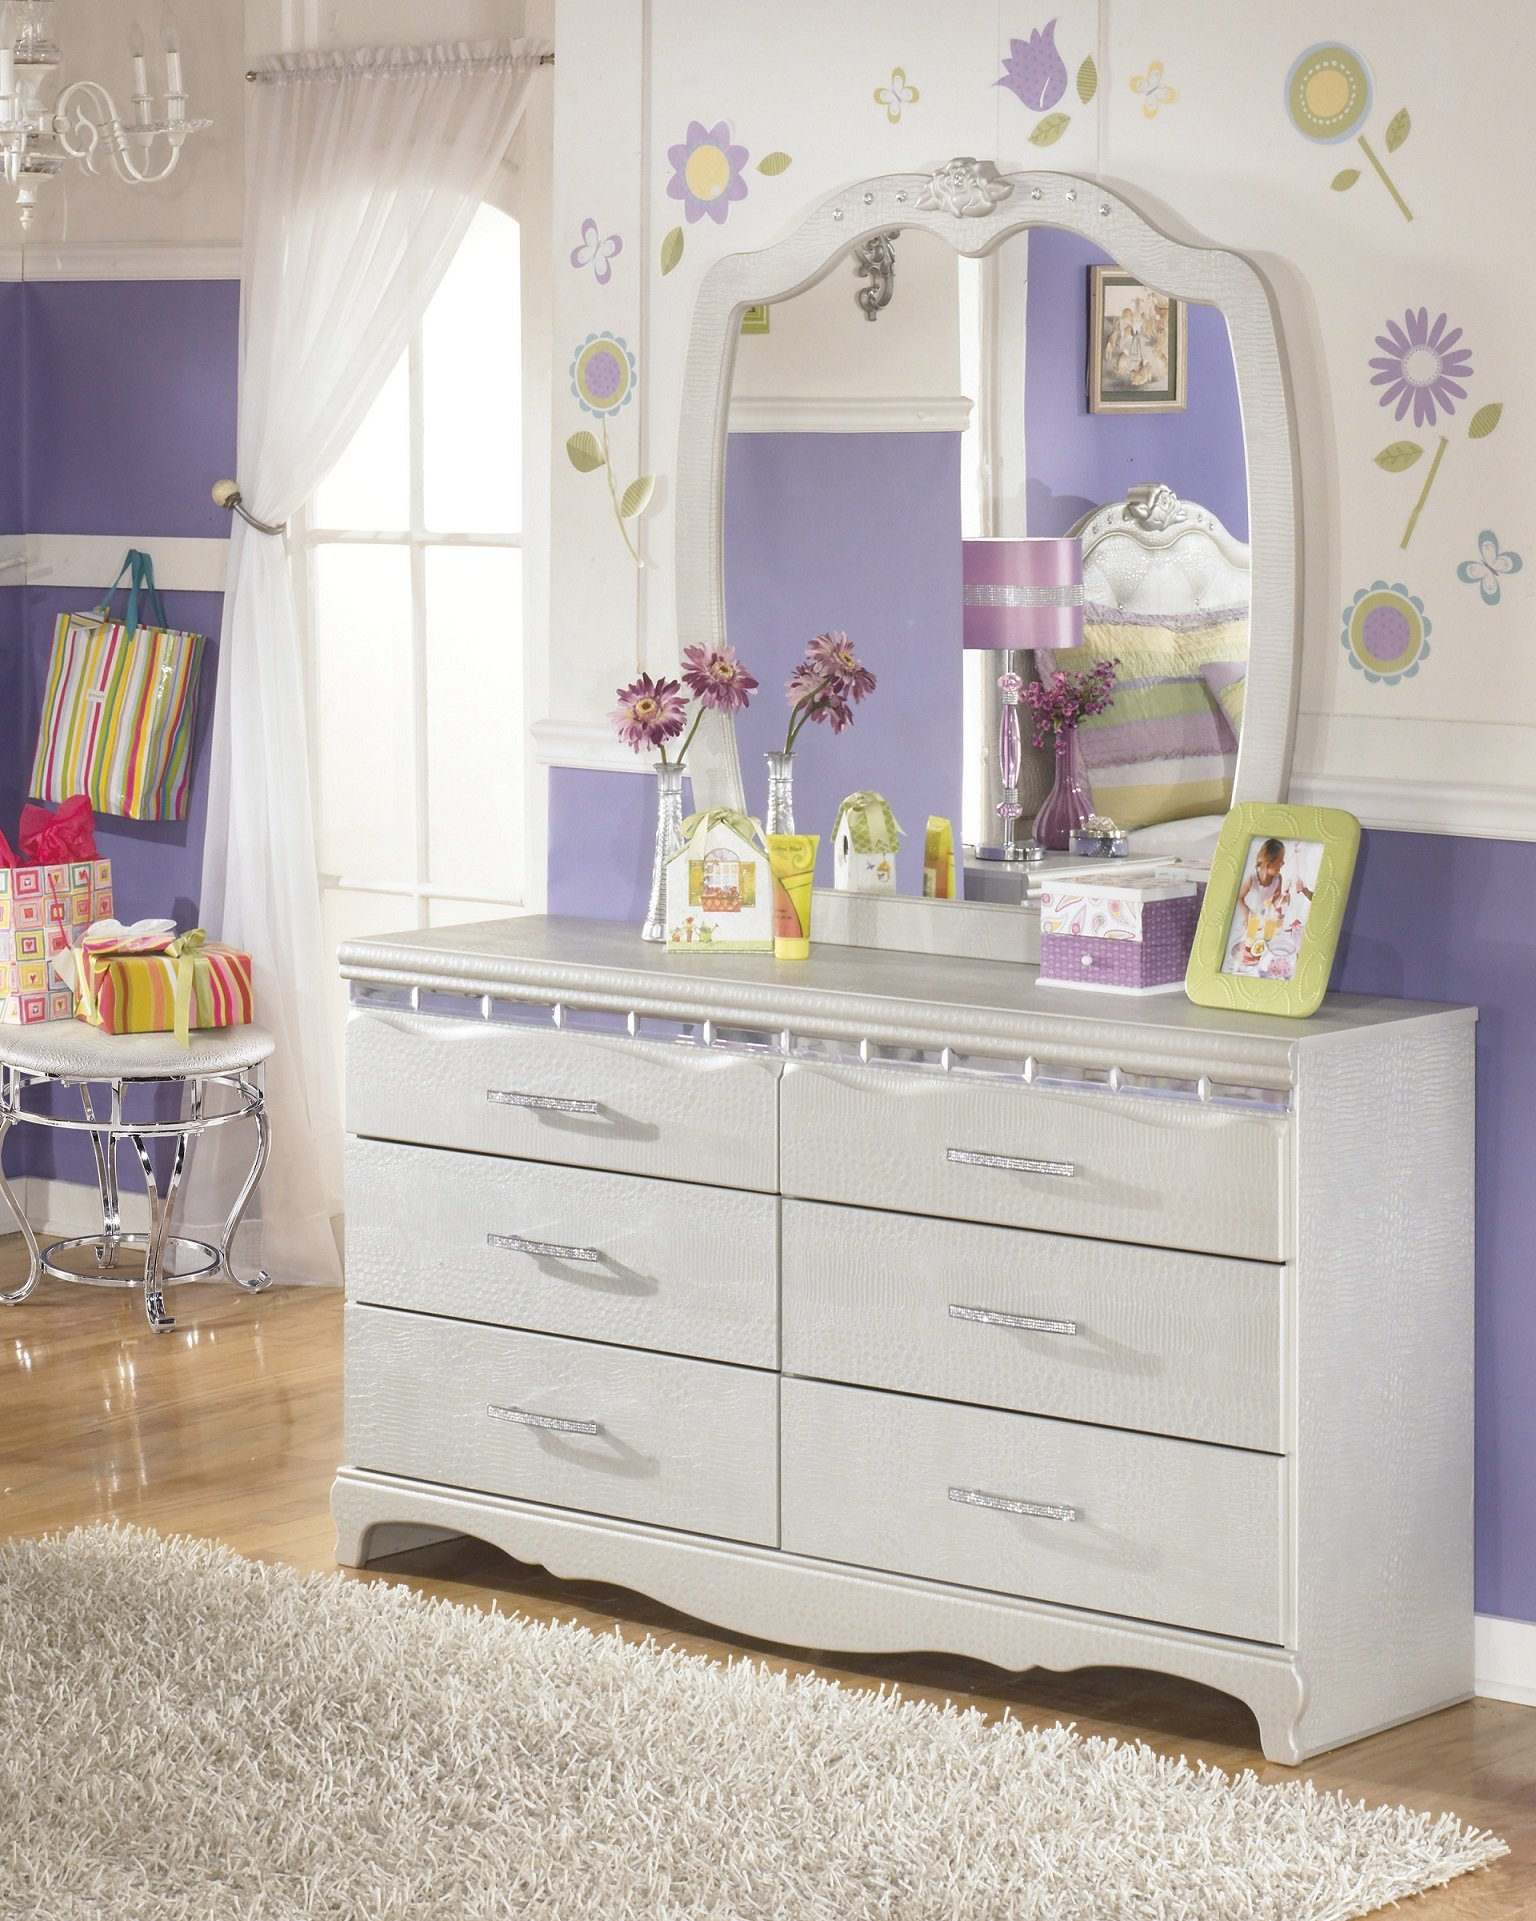 Julia Girl's Bedroom Silver and Pearl Dresser Mirror